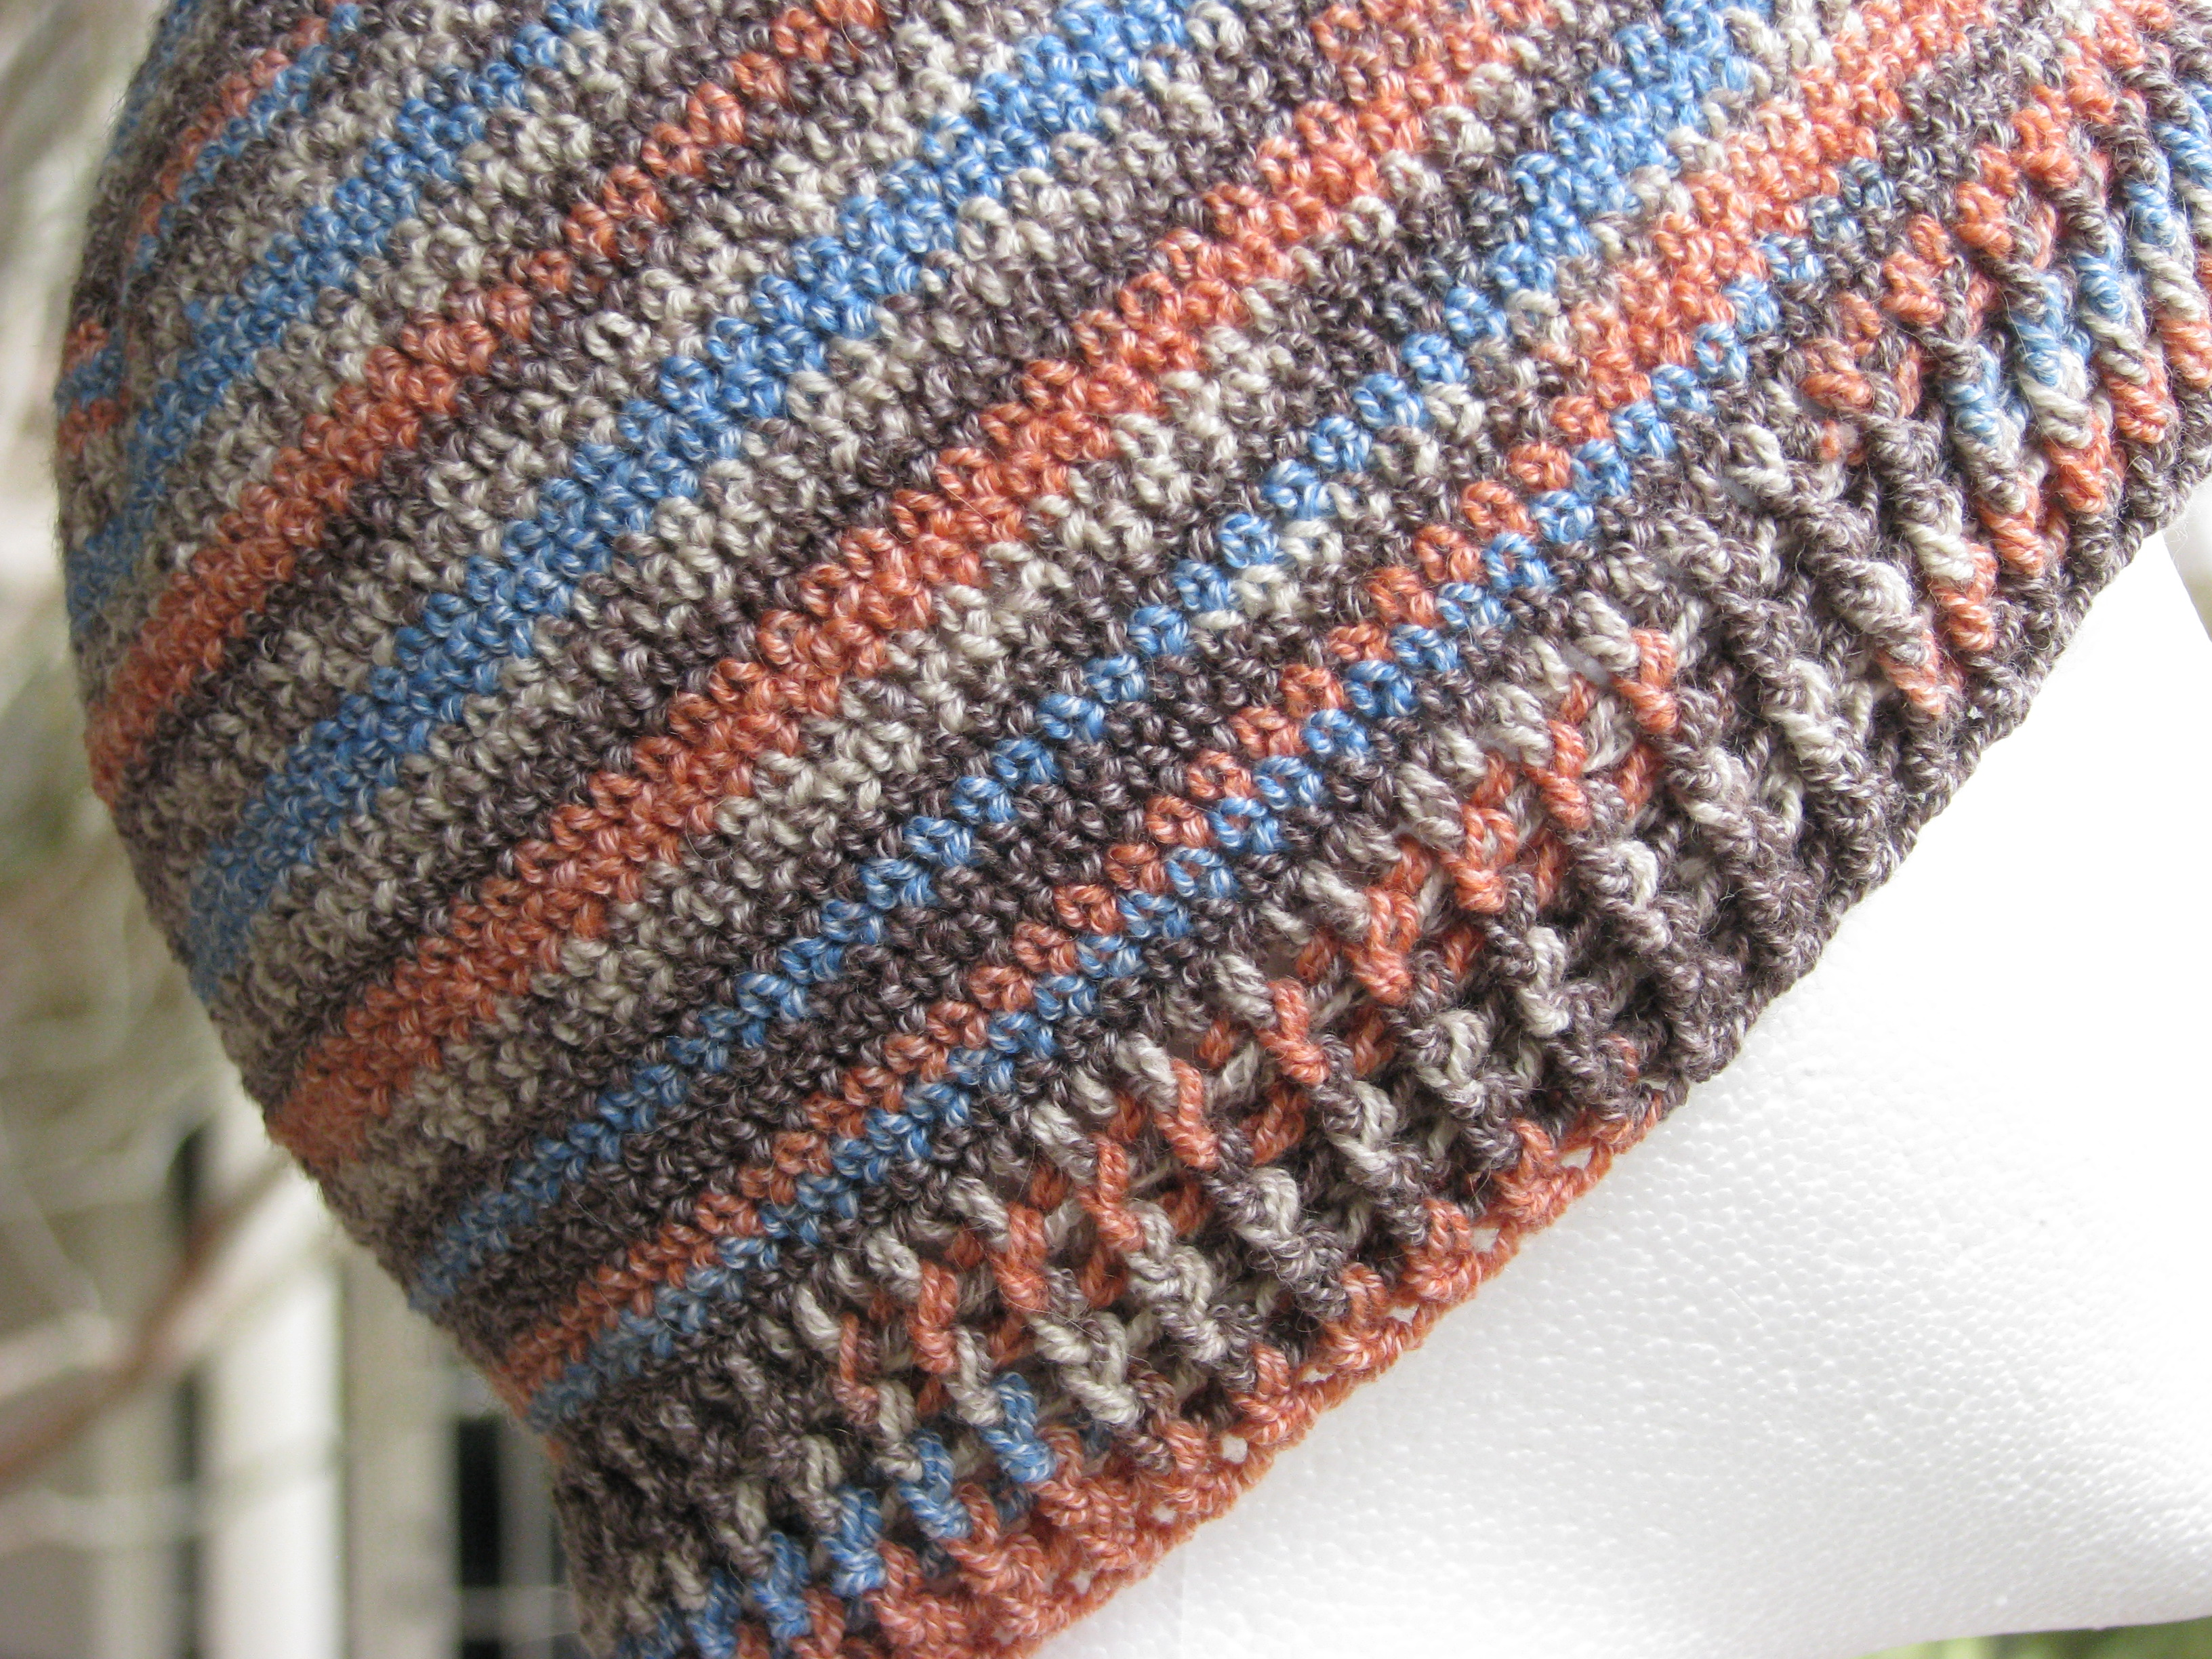 Crochet Patterns Scarfie Yarn : Single crochet gives nice results with sock yarn striping.